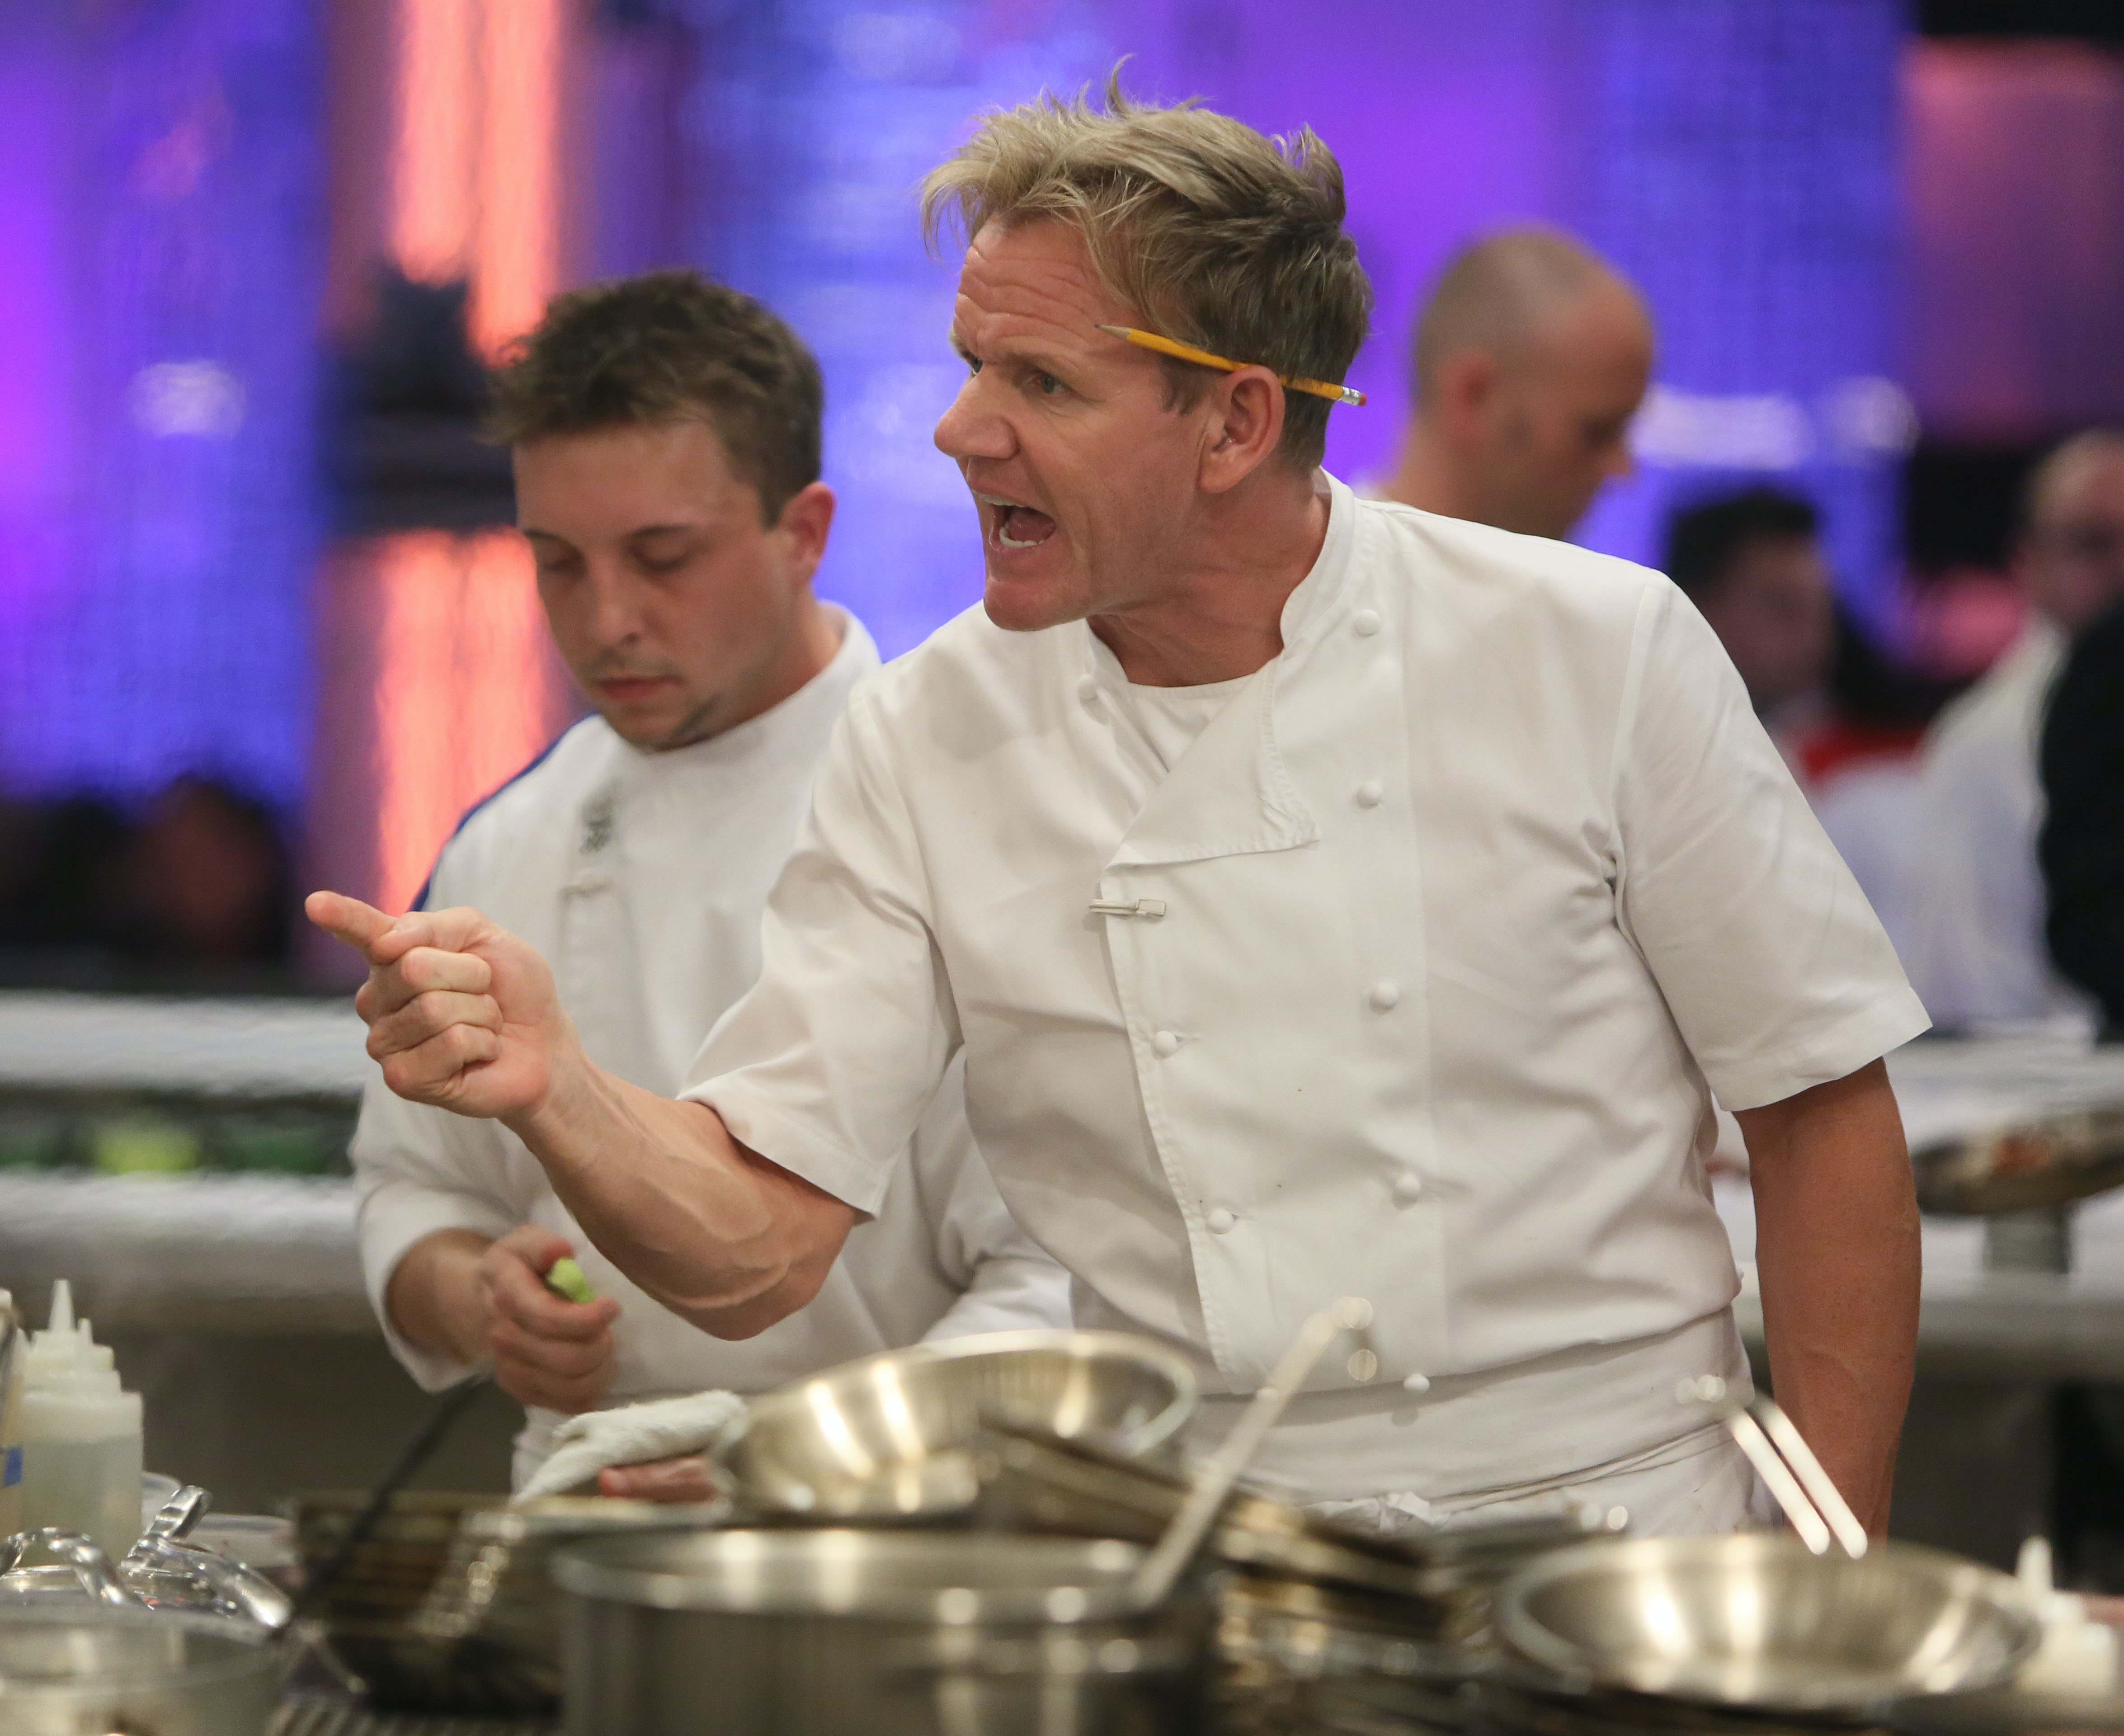 is hell s kitchen chef gordon ramsay nice in real life he likes